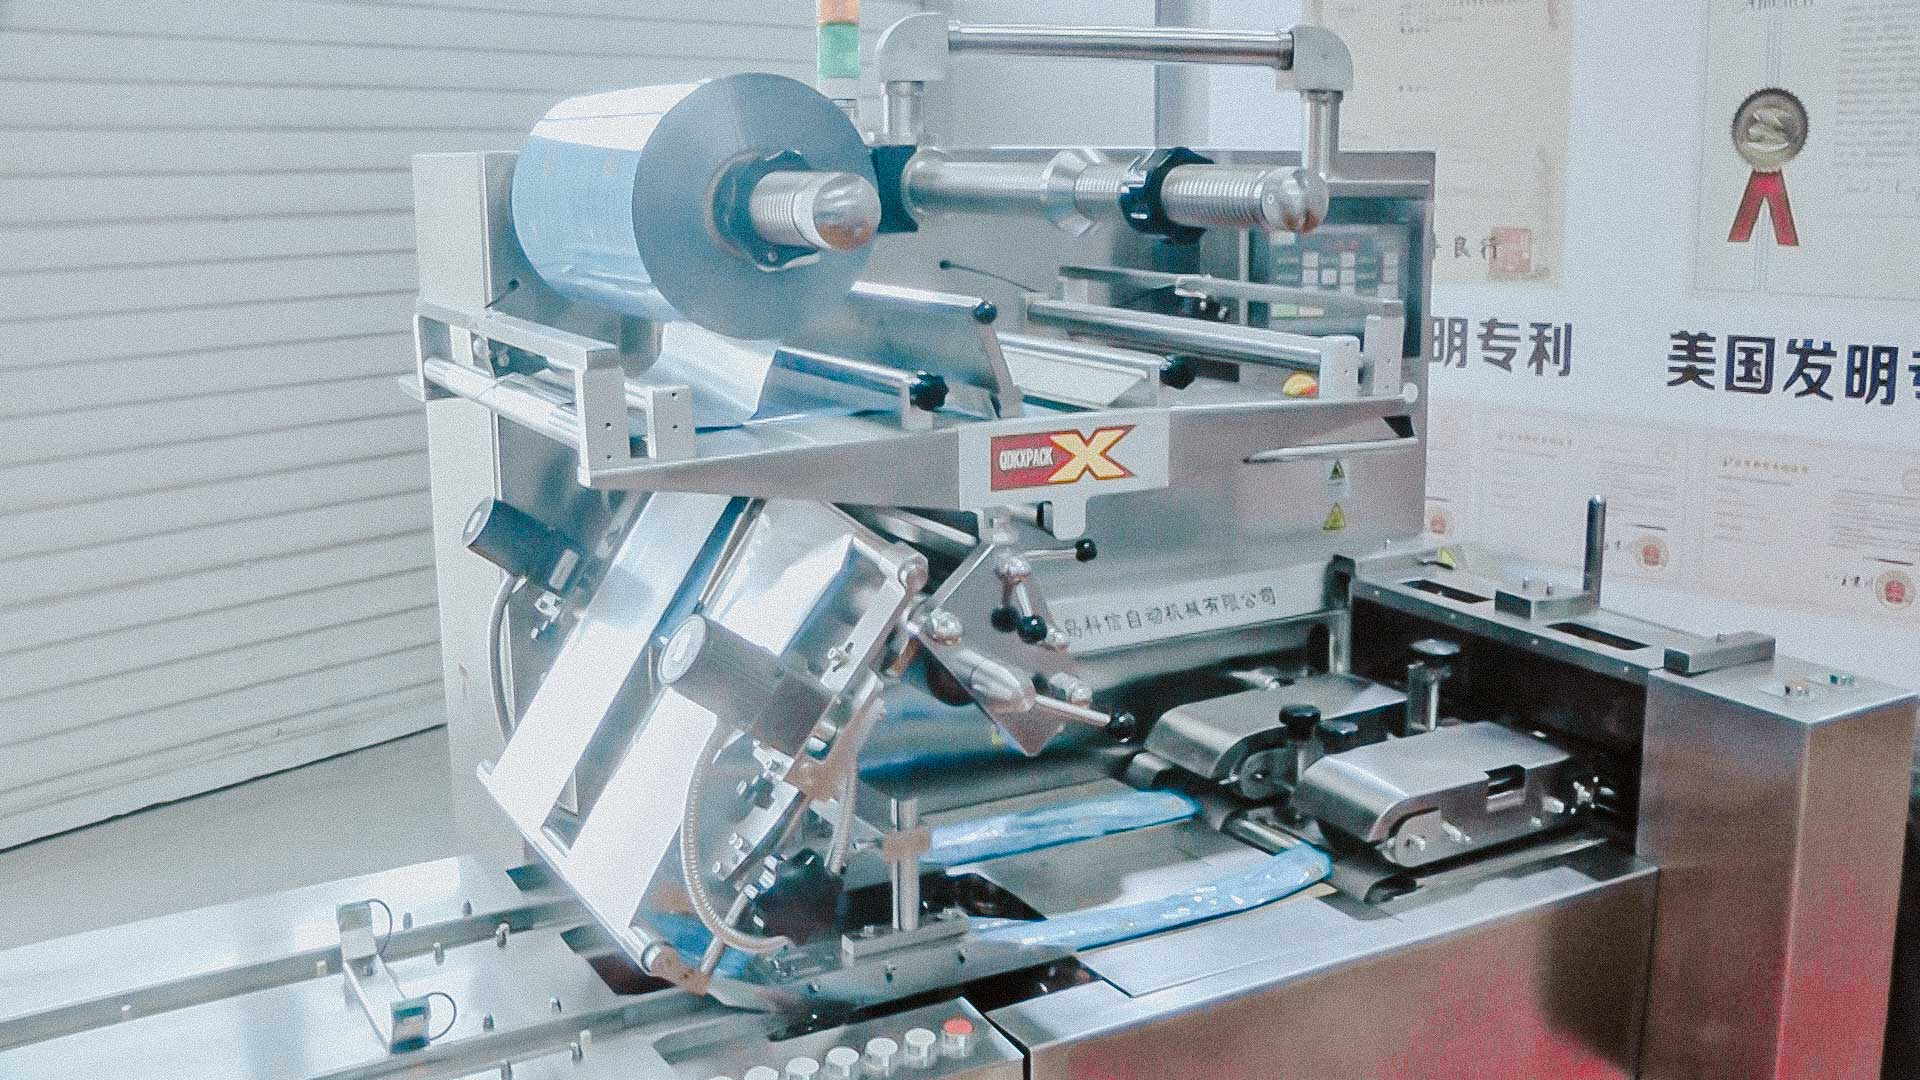 Automatic packaging machine to pack blisters with pills in plastic bag